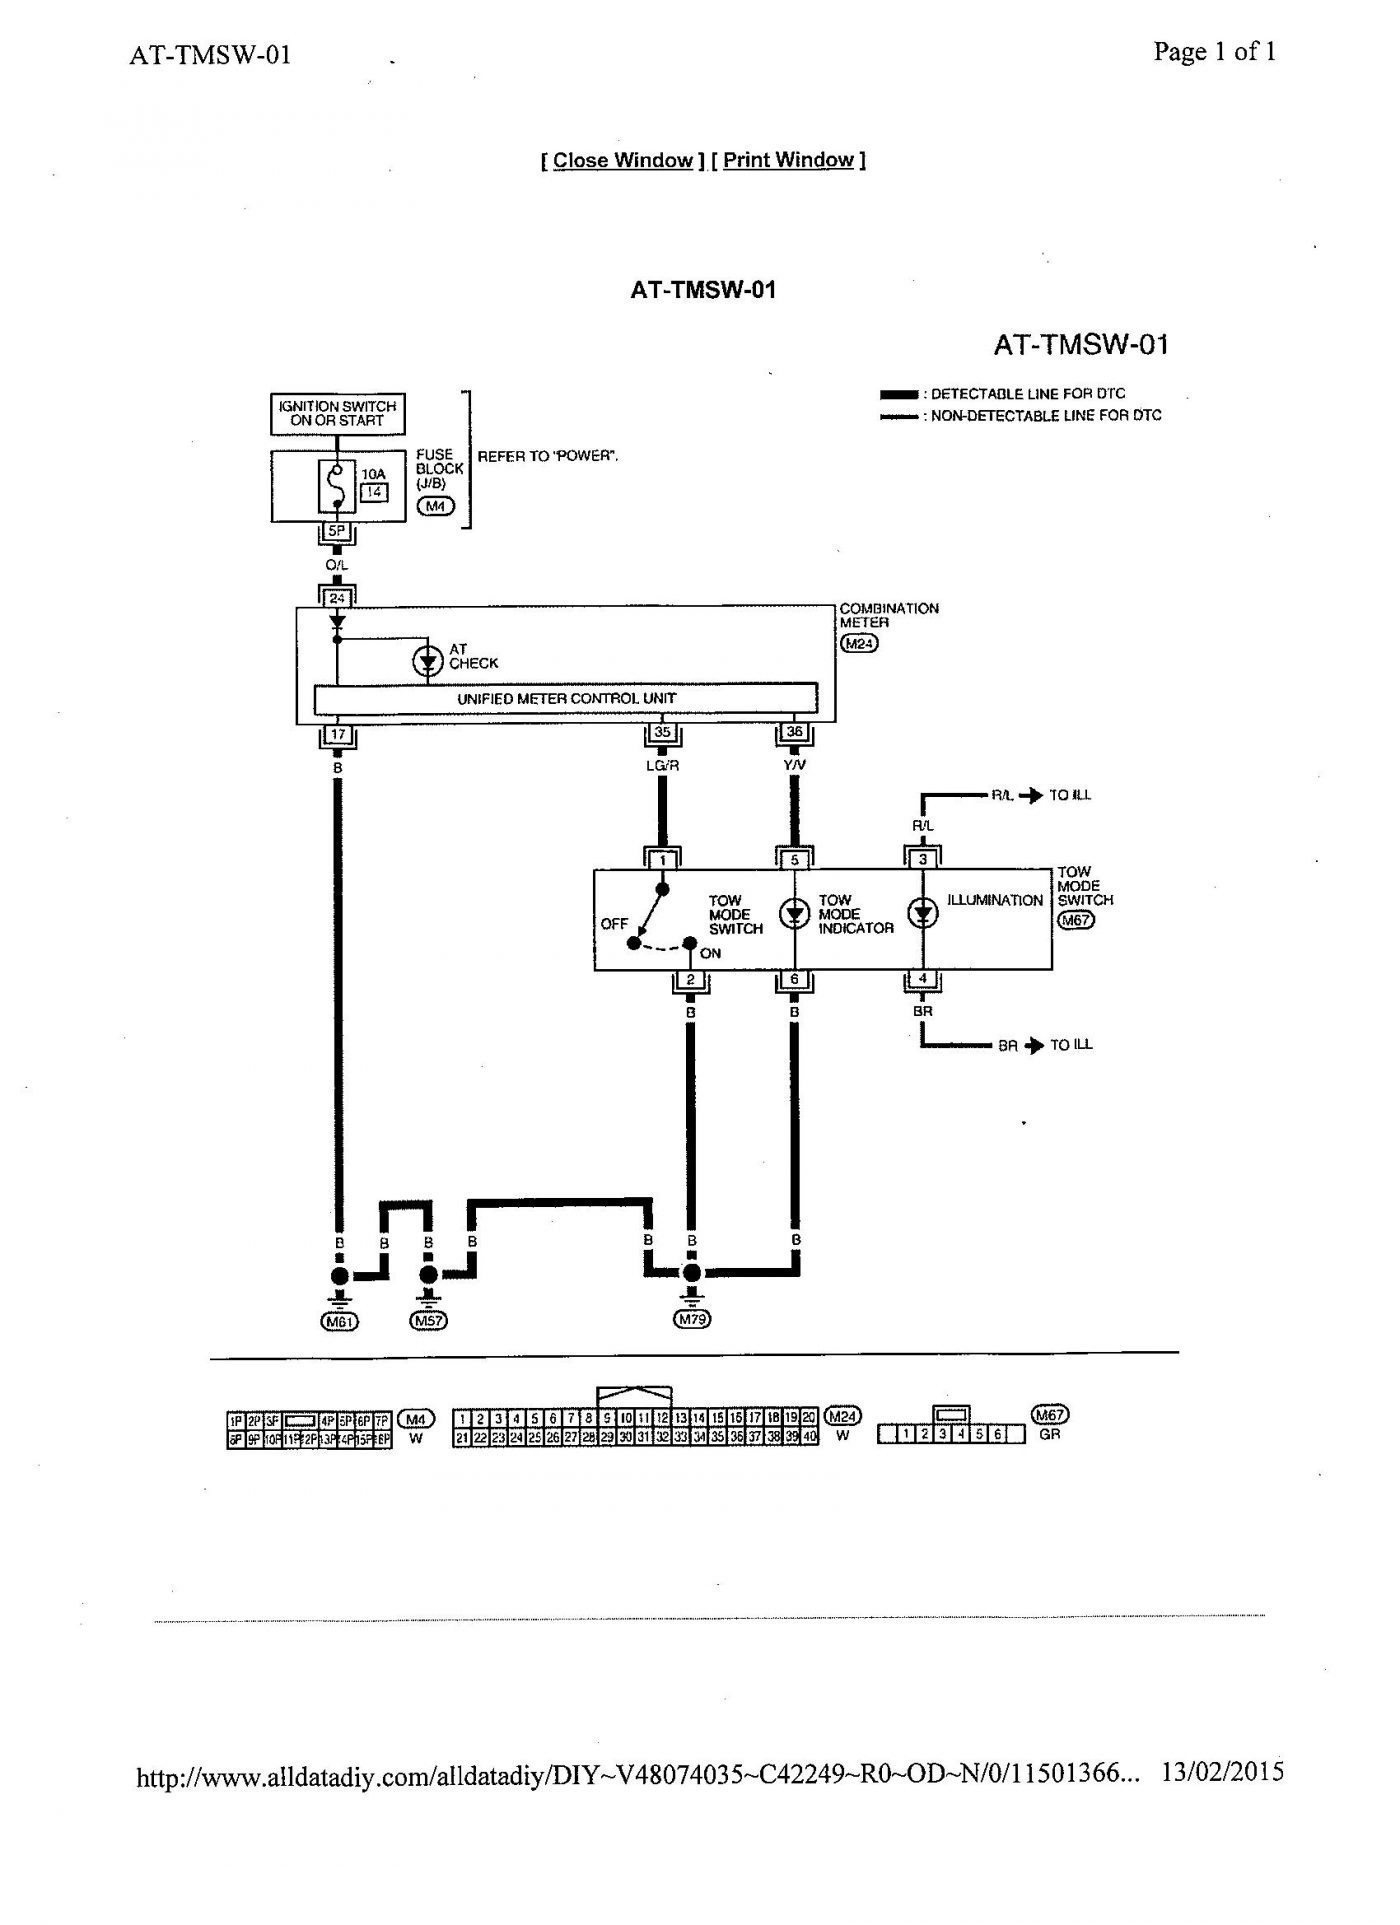 Ford Tractor Parts Diagram Tractor Ignition Switch Wiring ... on ford tractor ignition diagram, kubota tractor radio wiring diagram, oliver 550 tractor wiring diagram, tractor alternator wiring diagram, 12 volt solenoid wiring diagram, craftsman riding lawn mower ignition diagram, starter wiring diagram, garden tractor ignition switch diagram, mtd riding mower wiring diagram, lawn tractor wiring diagram, lawn mower switch diagram, small engine ignition diagram, tractor light wiring diagram, tractor ignition switch replacement, ignition switch schematic diagram, tractor key switch, international tractor wiring diagram, tractor battery wiring diagram, diesel tractor wiring diagram, lawn tractor ignition switch diagram,